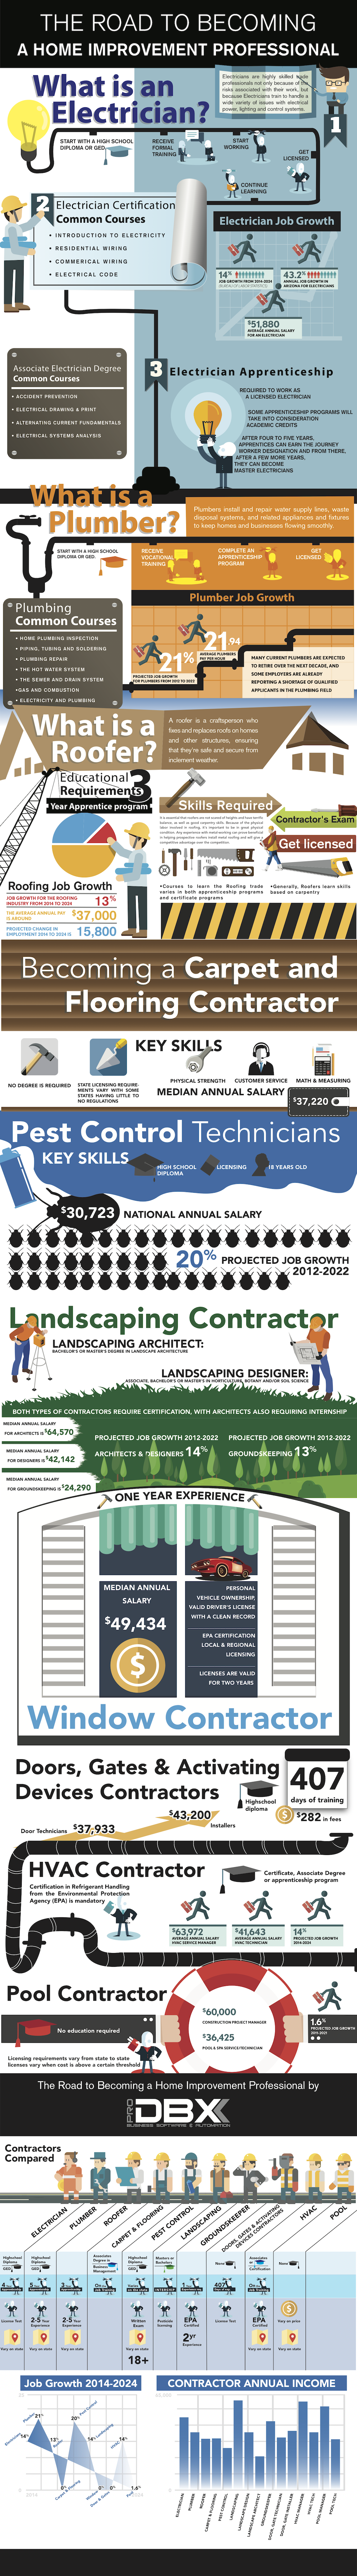 A Guide To Becoming An Home Improvement Professional - Infographic